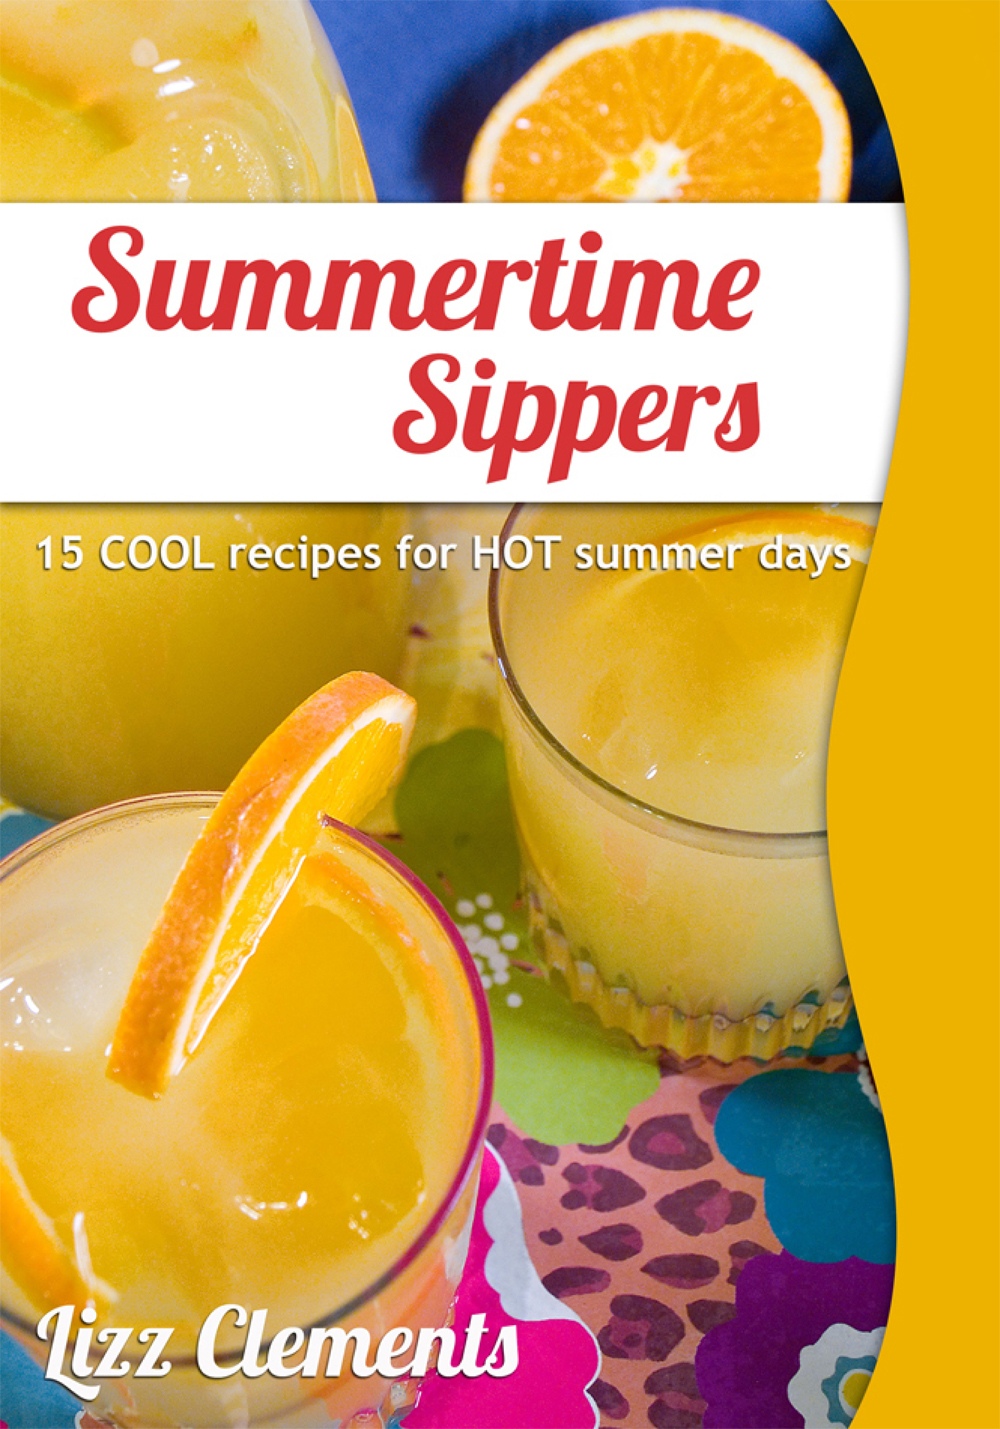 Summertime Sippers